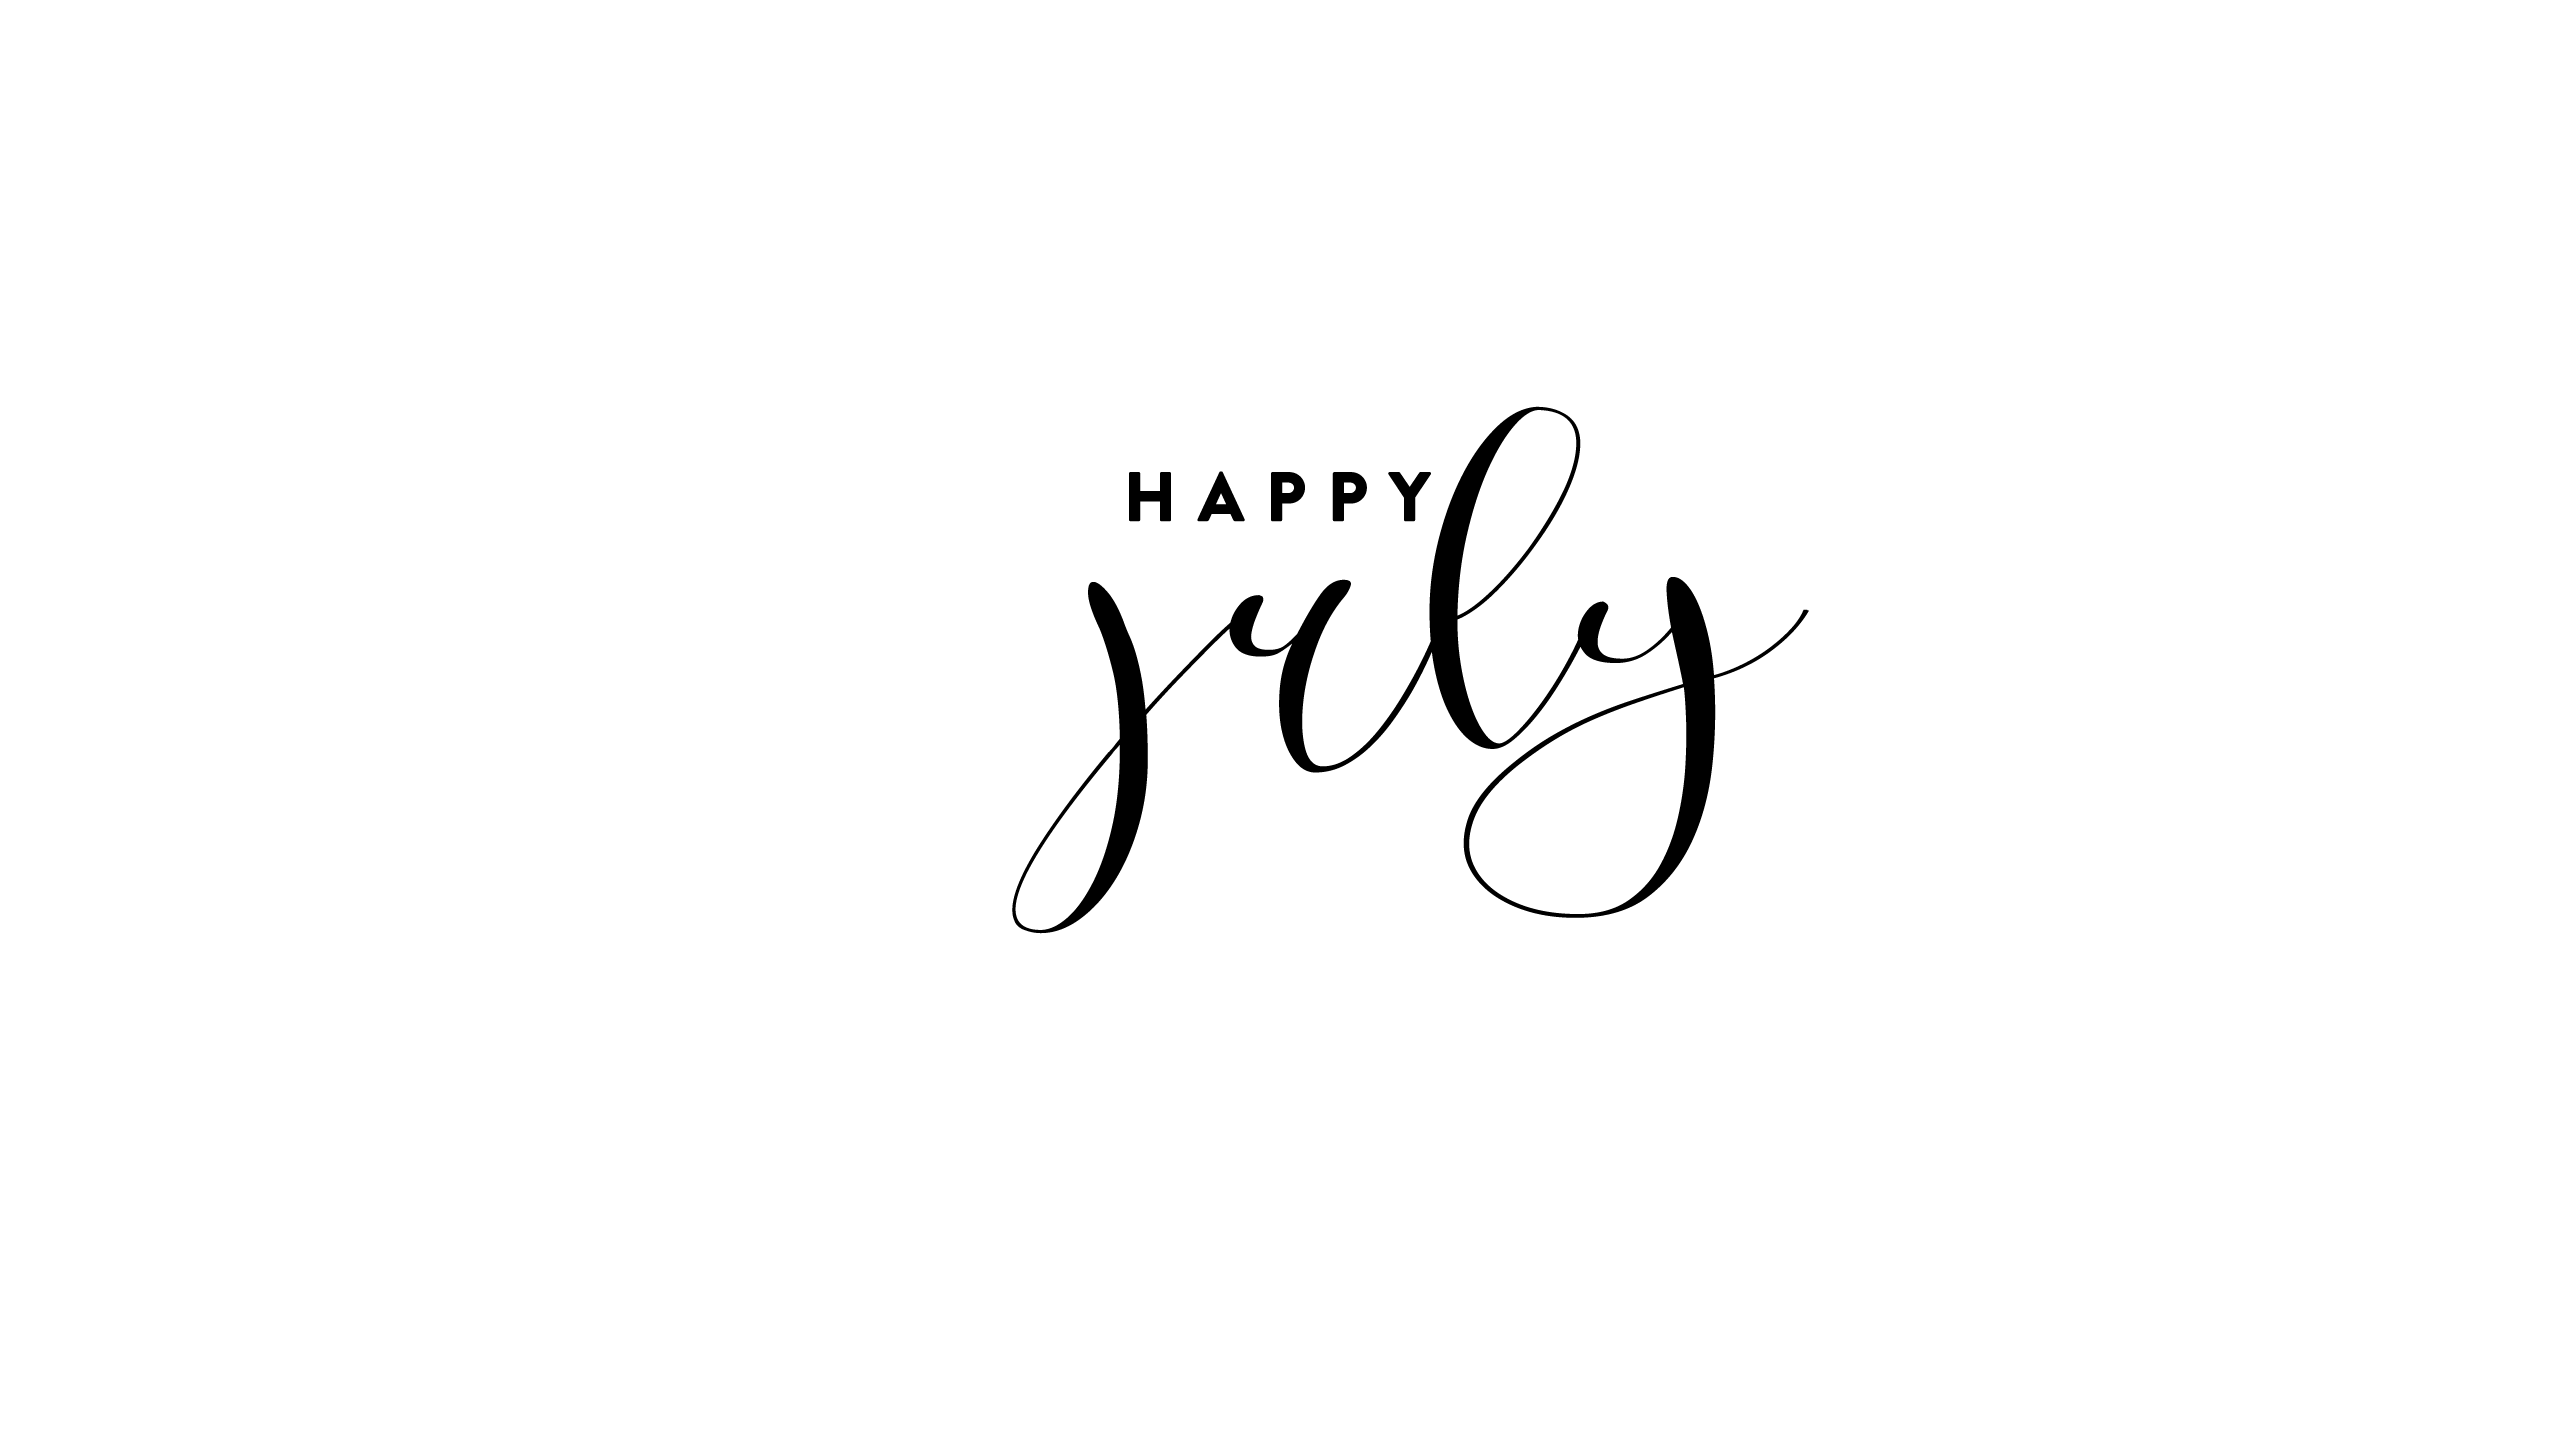 Happy of july